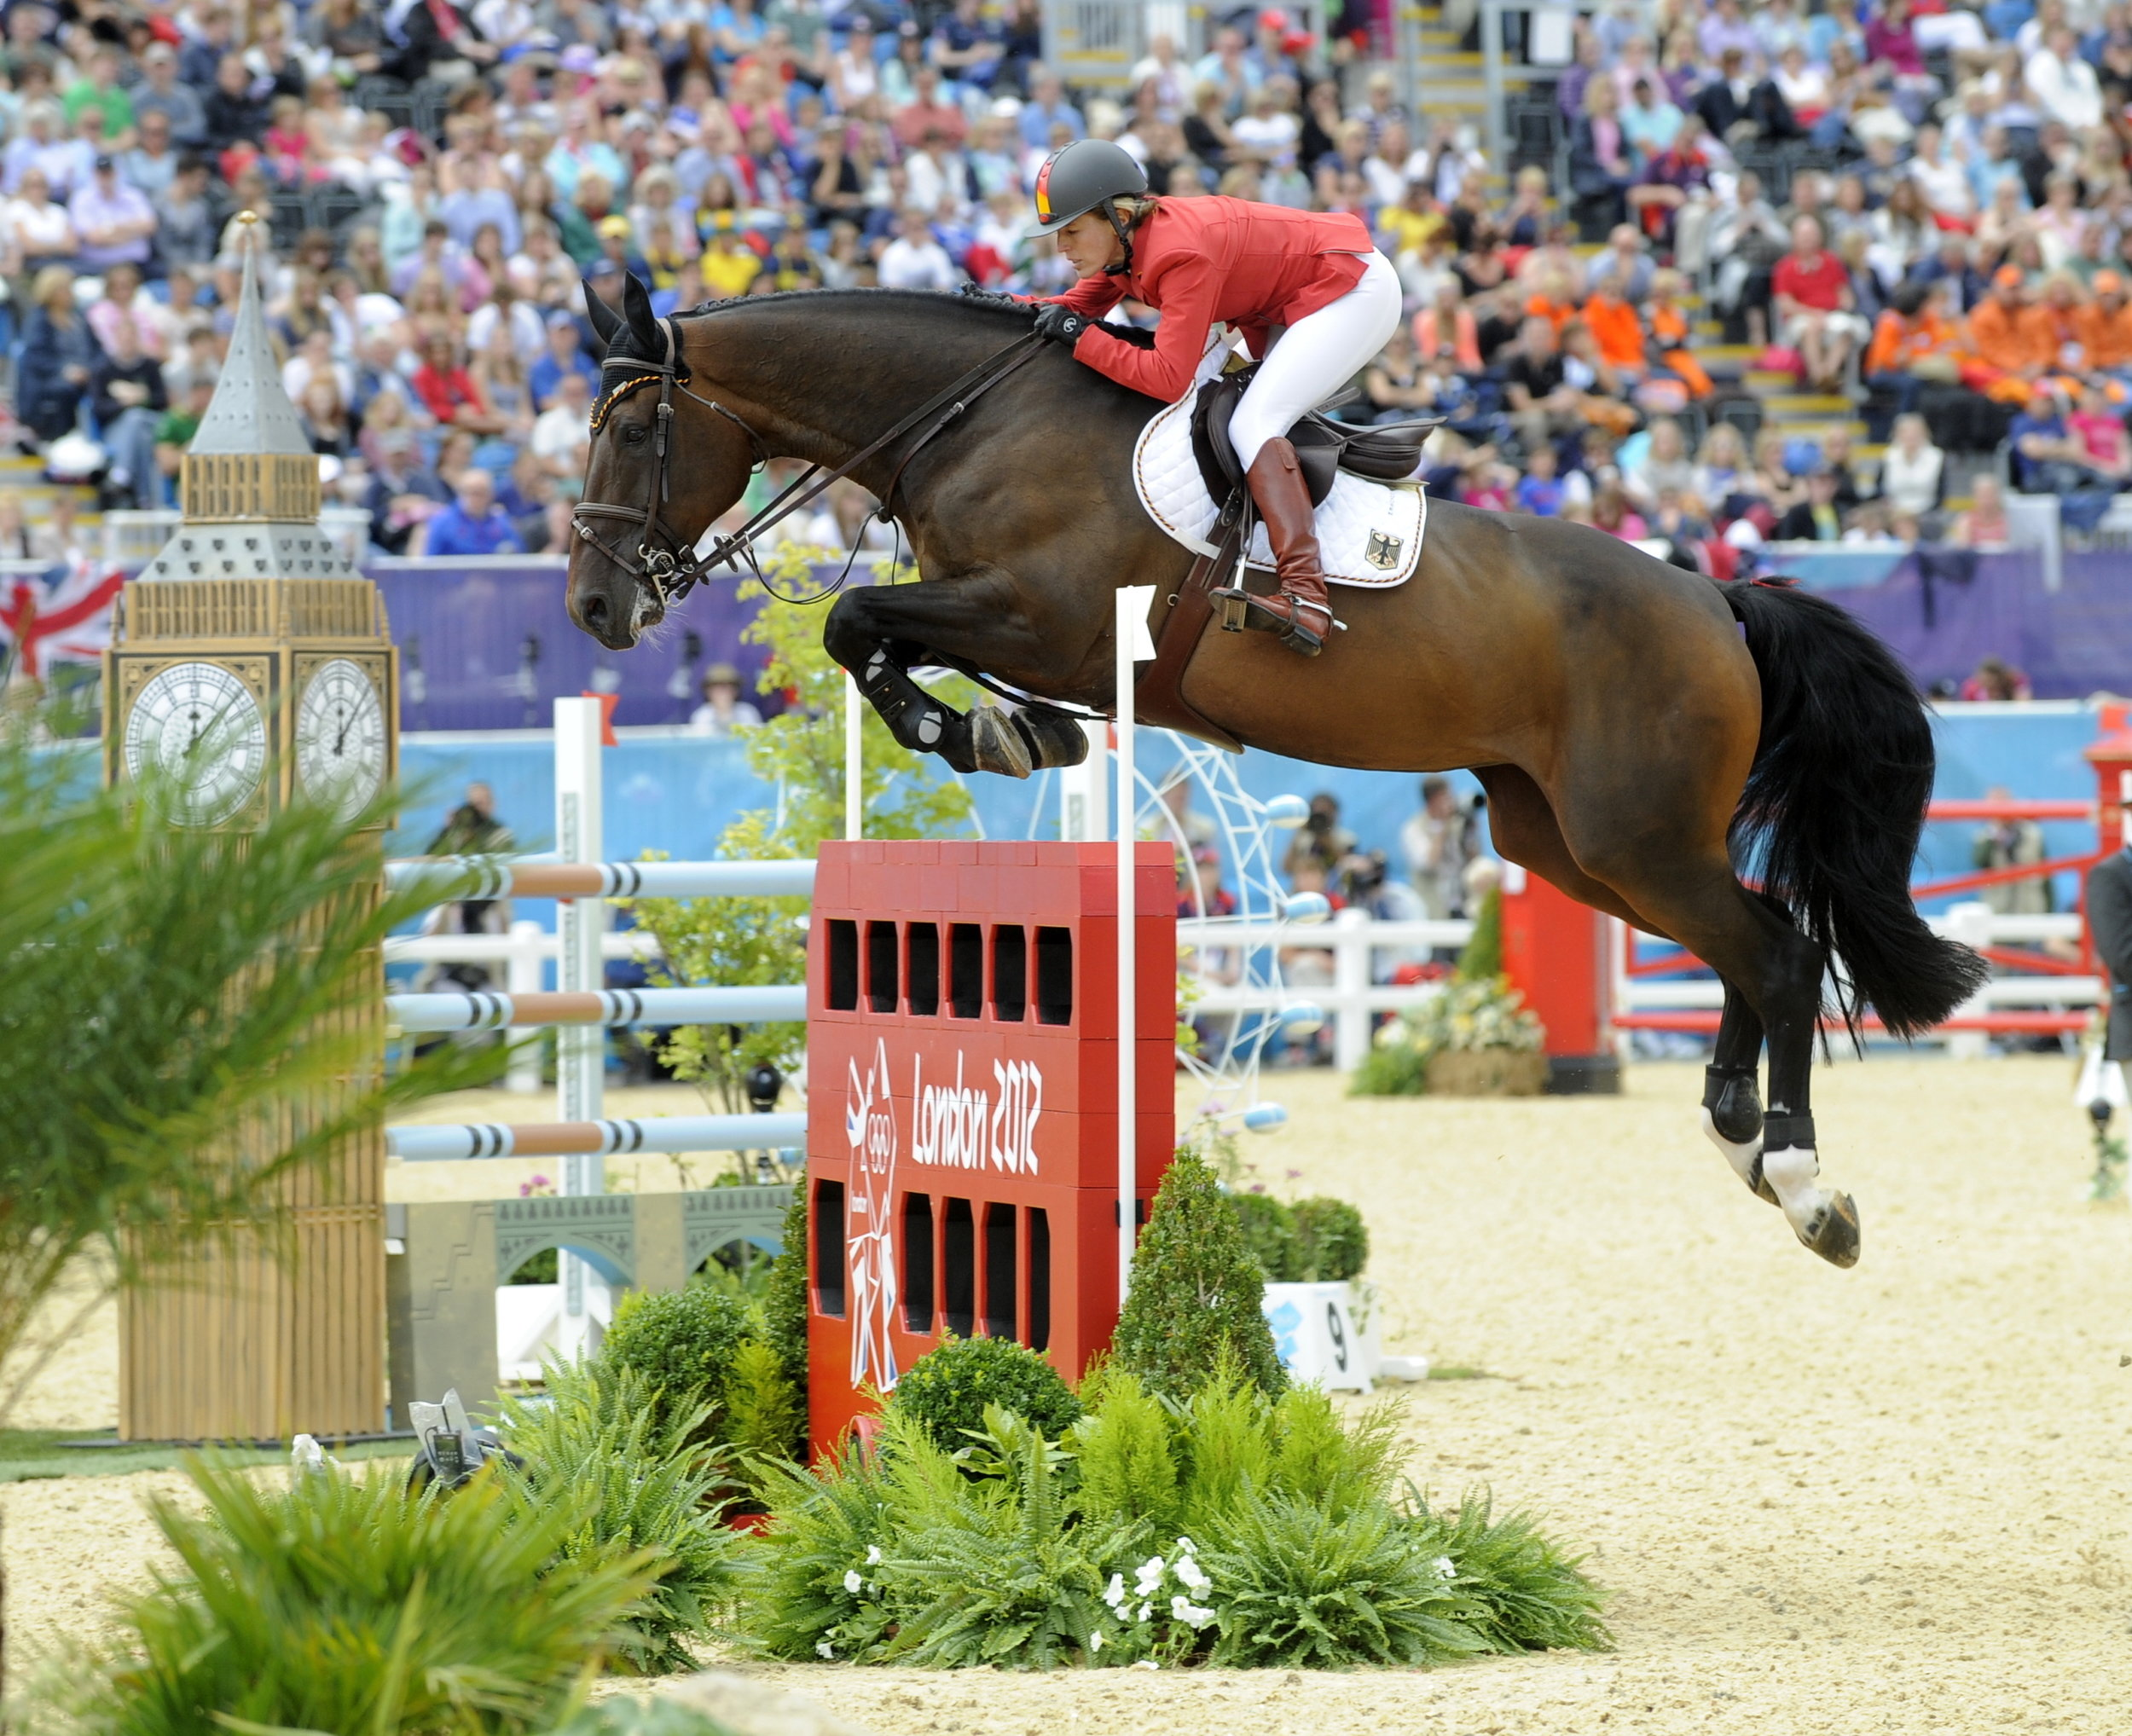 Bella Donna competing in the 2012 London Olympics with her rider    Meredith Michaels-Beerbaum(Germany)